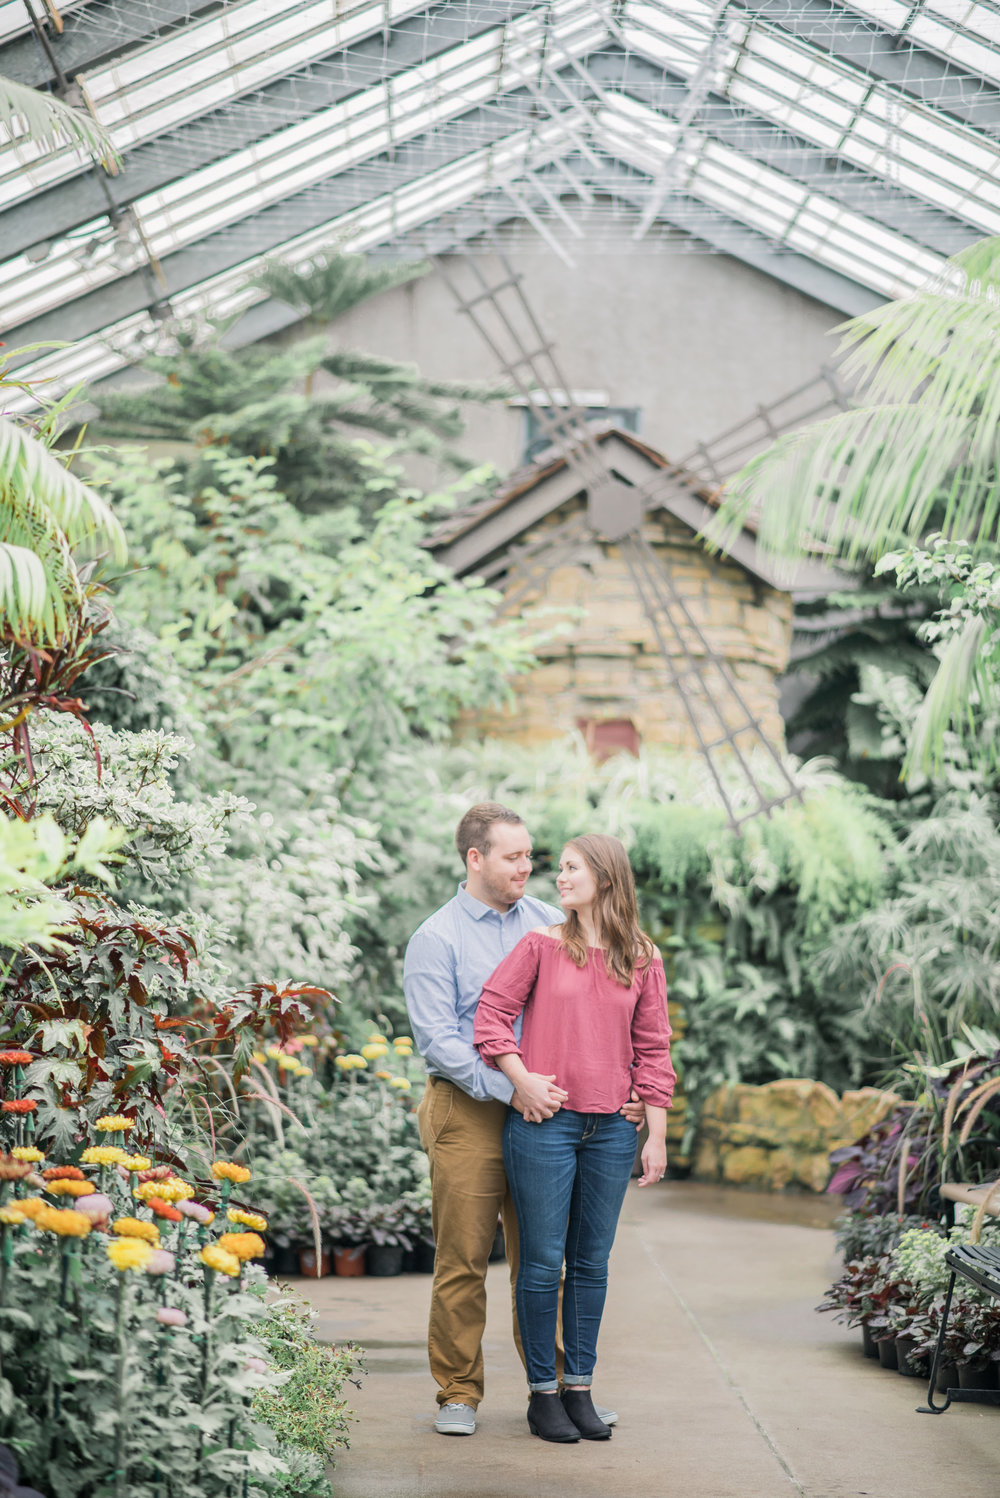 A greenhouse is another great option for portrait locations if the forecast is calling for rain.